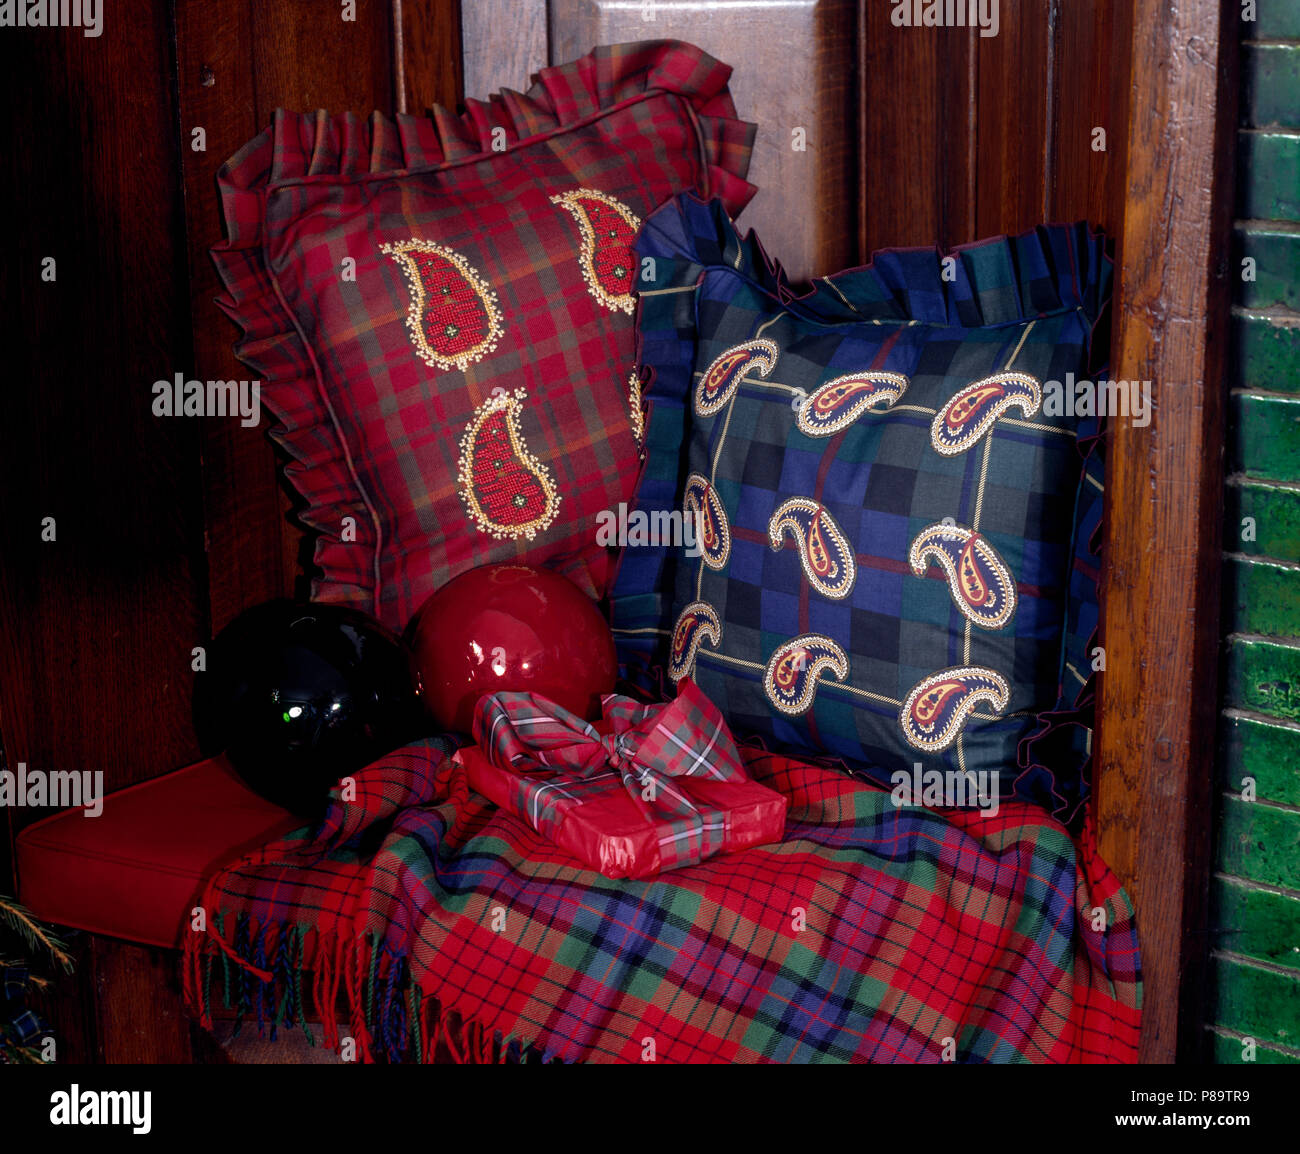 Red And Blue Paisley Appliqued Cushions On Chair With A Plaid Throw And A  Gift Wrapped Christmas Present